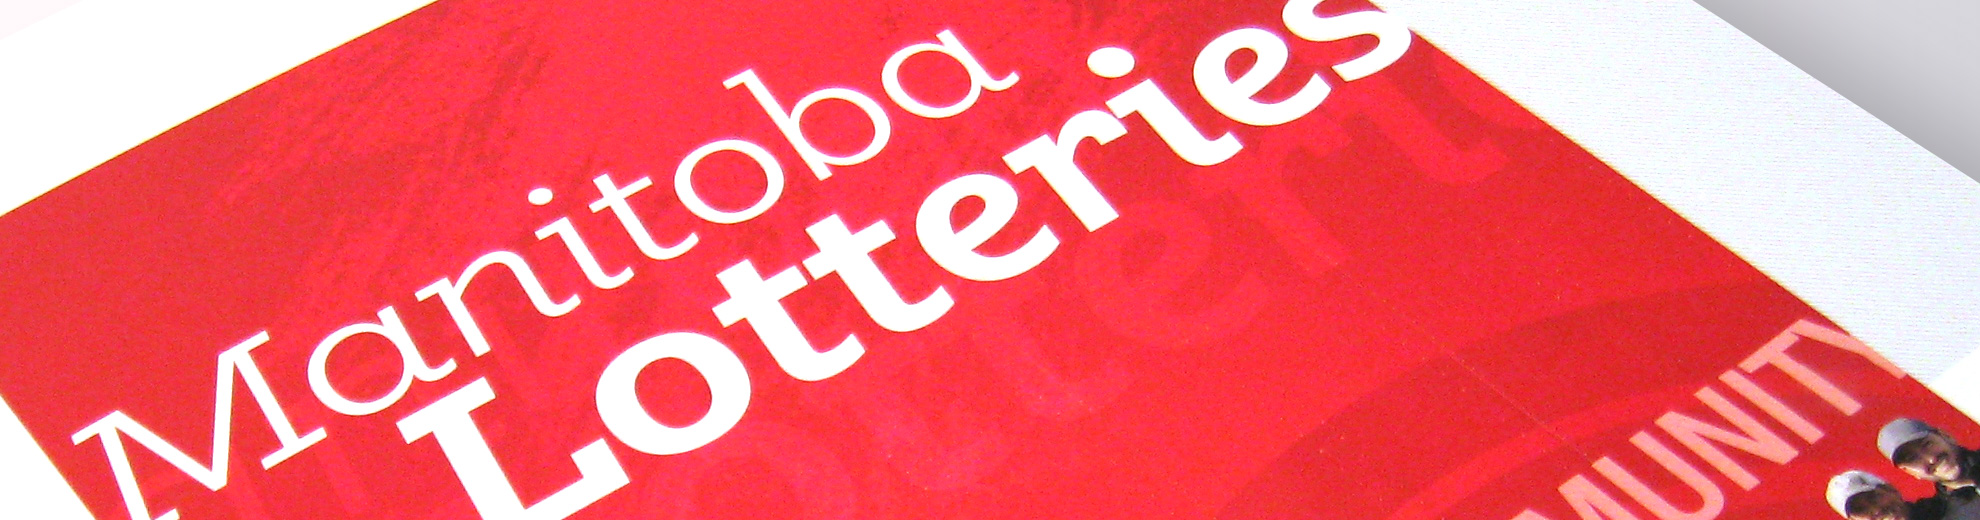 Manitoba Lotteries transitions to a newly merged entity